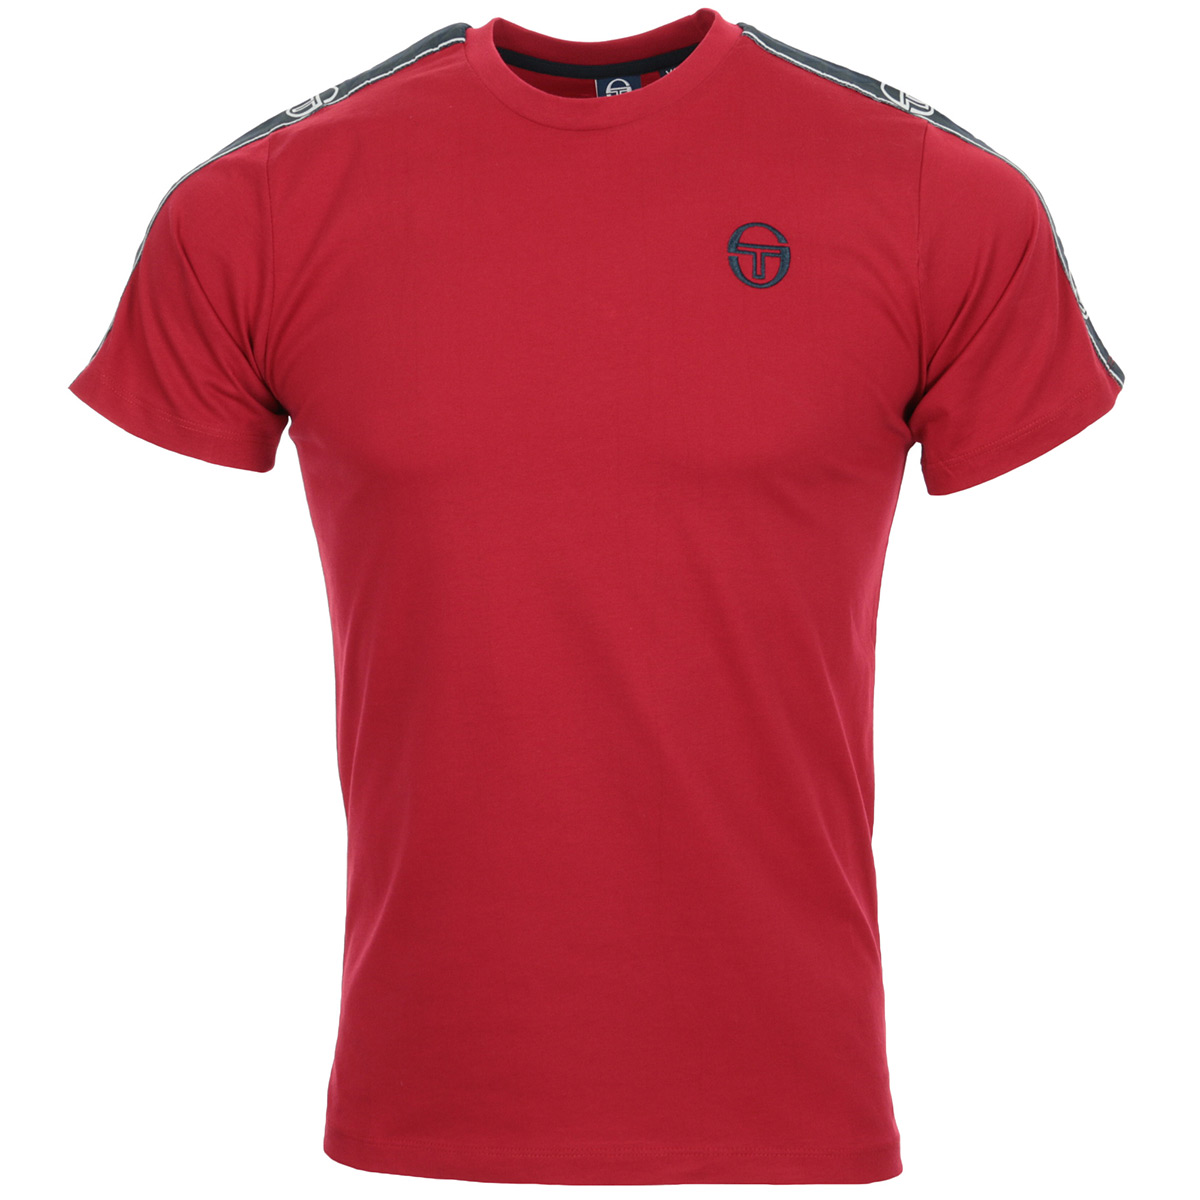 Sergio Tacchini Feather T-Shirt